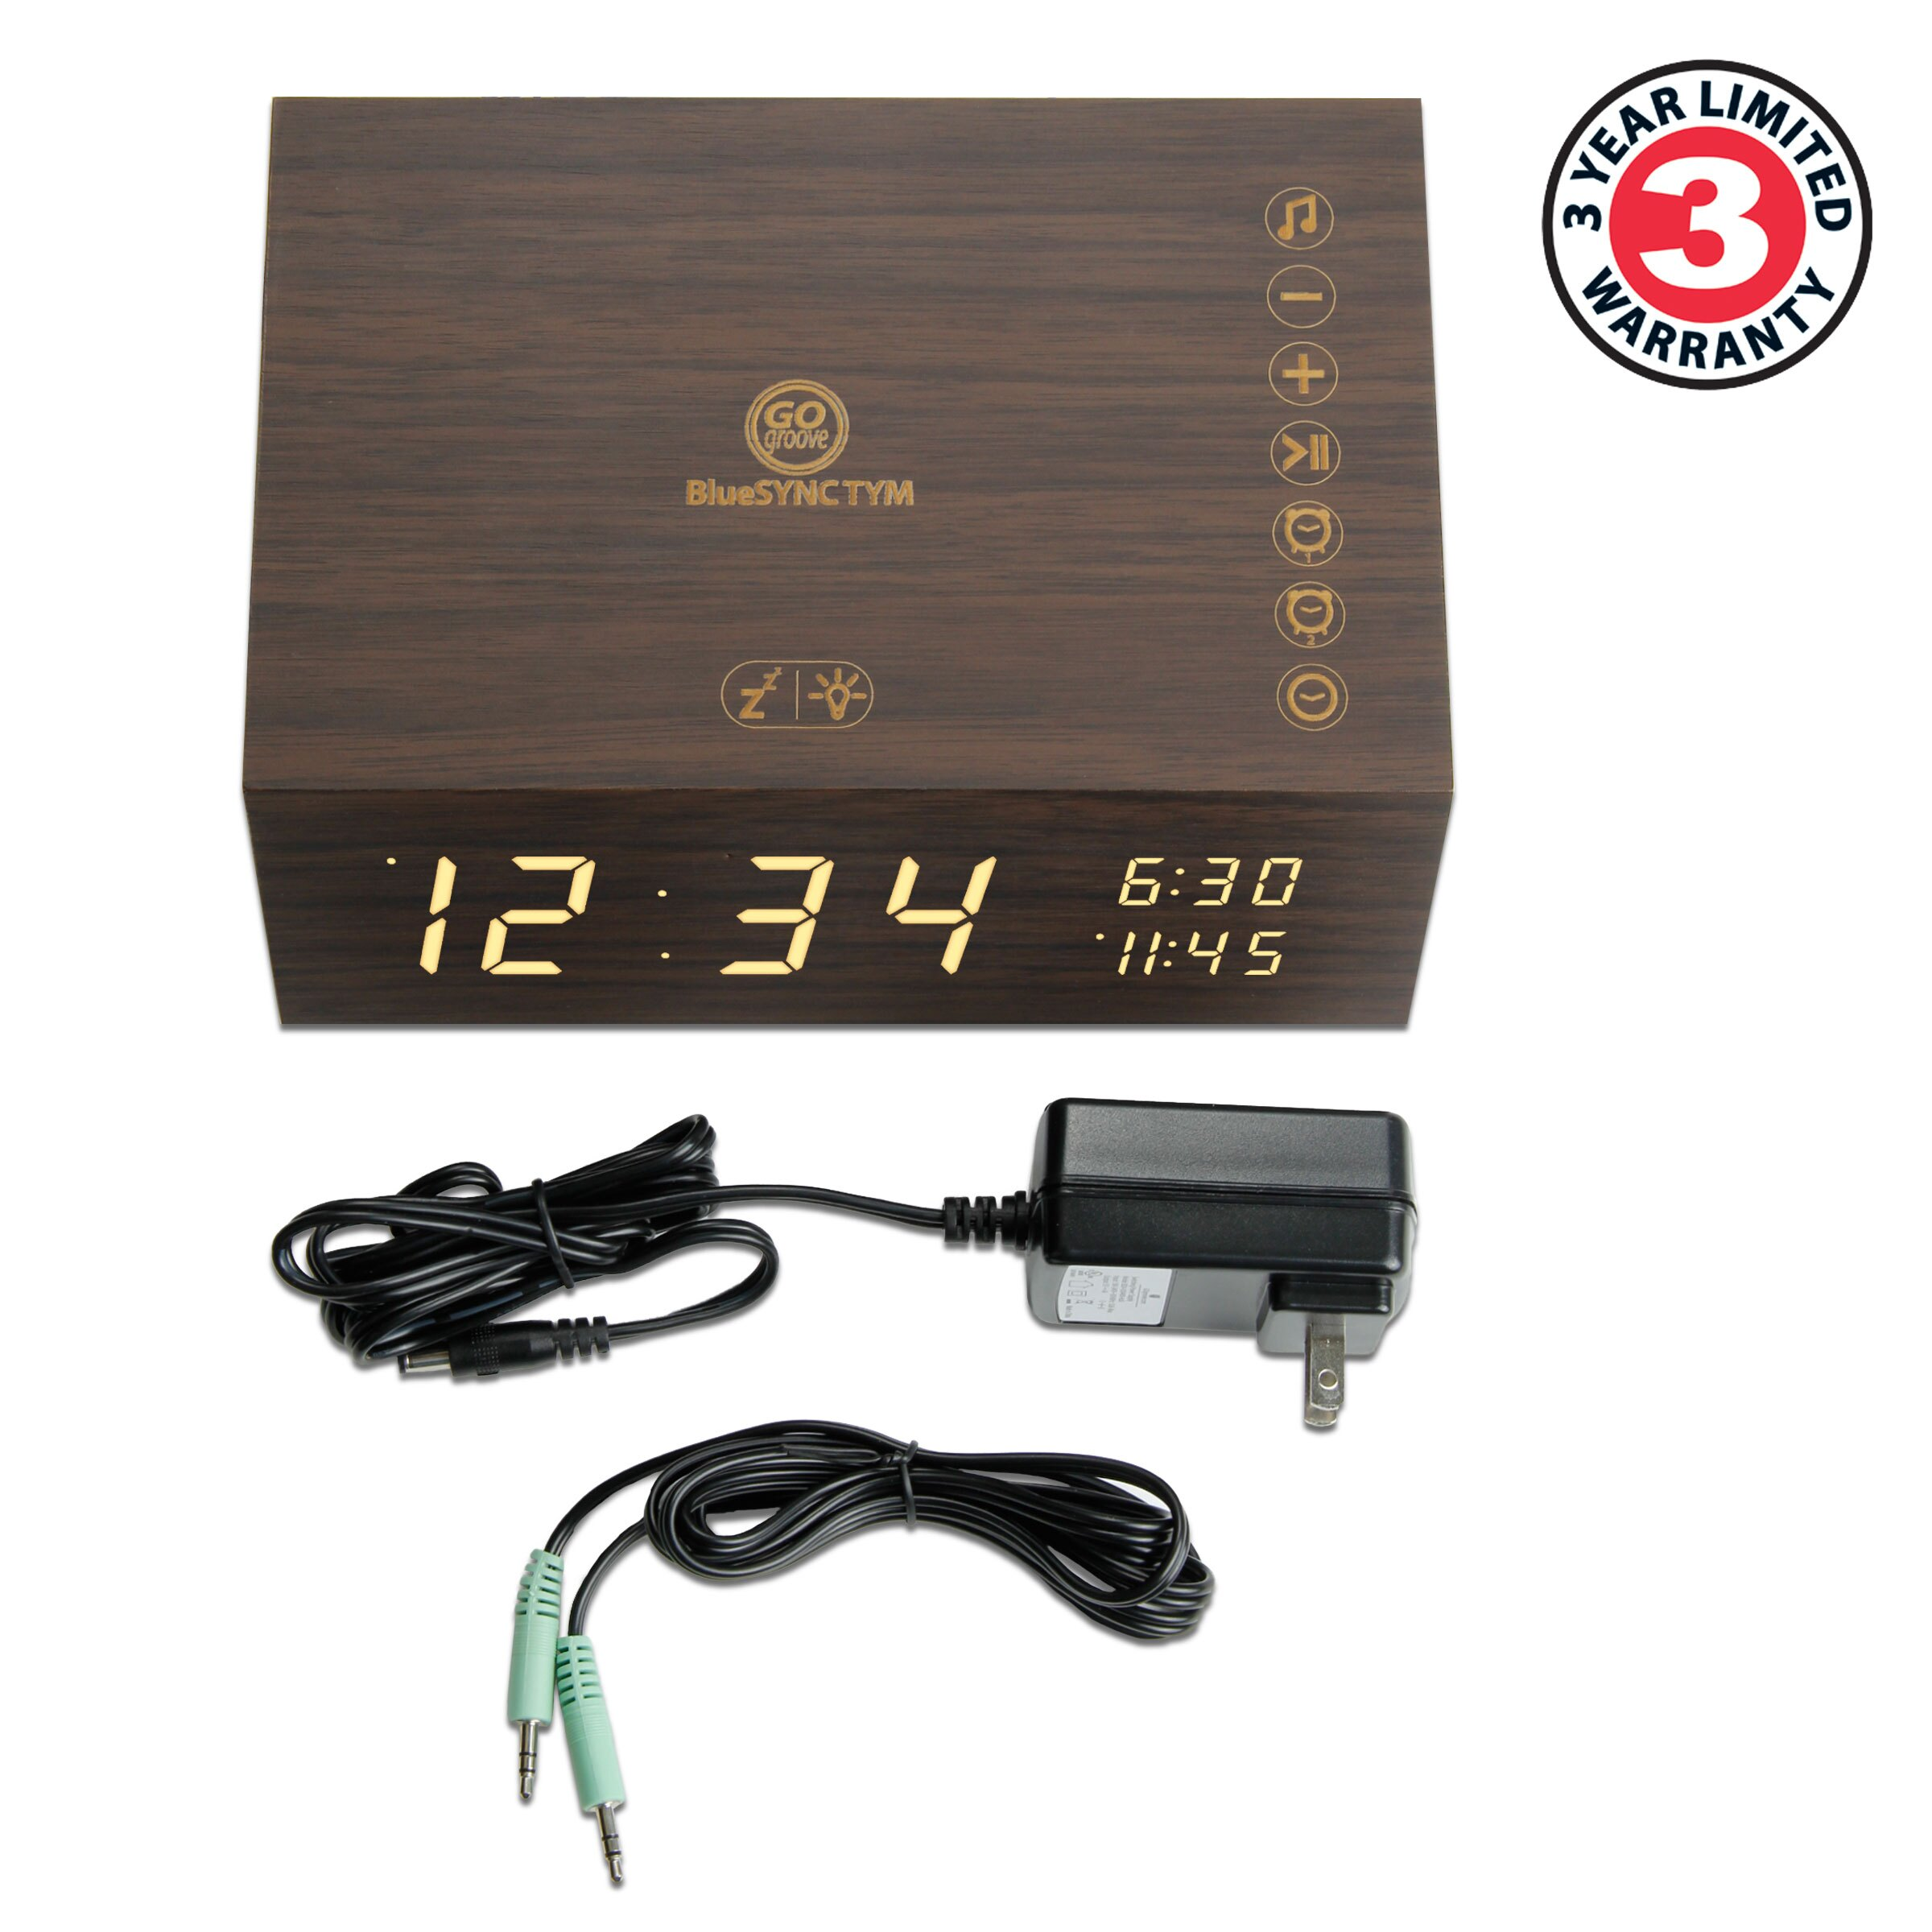 Bluetooth Alarm Clock Radio Speaker by GOgroove - Wood , FM Radio , Dual Alarms , USB Charging Ports 1